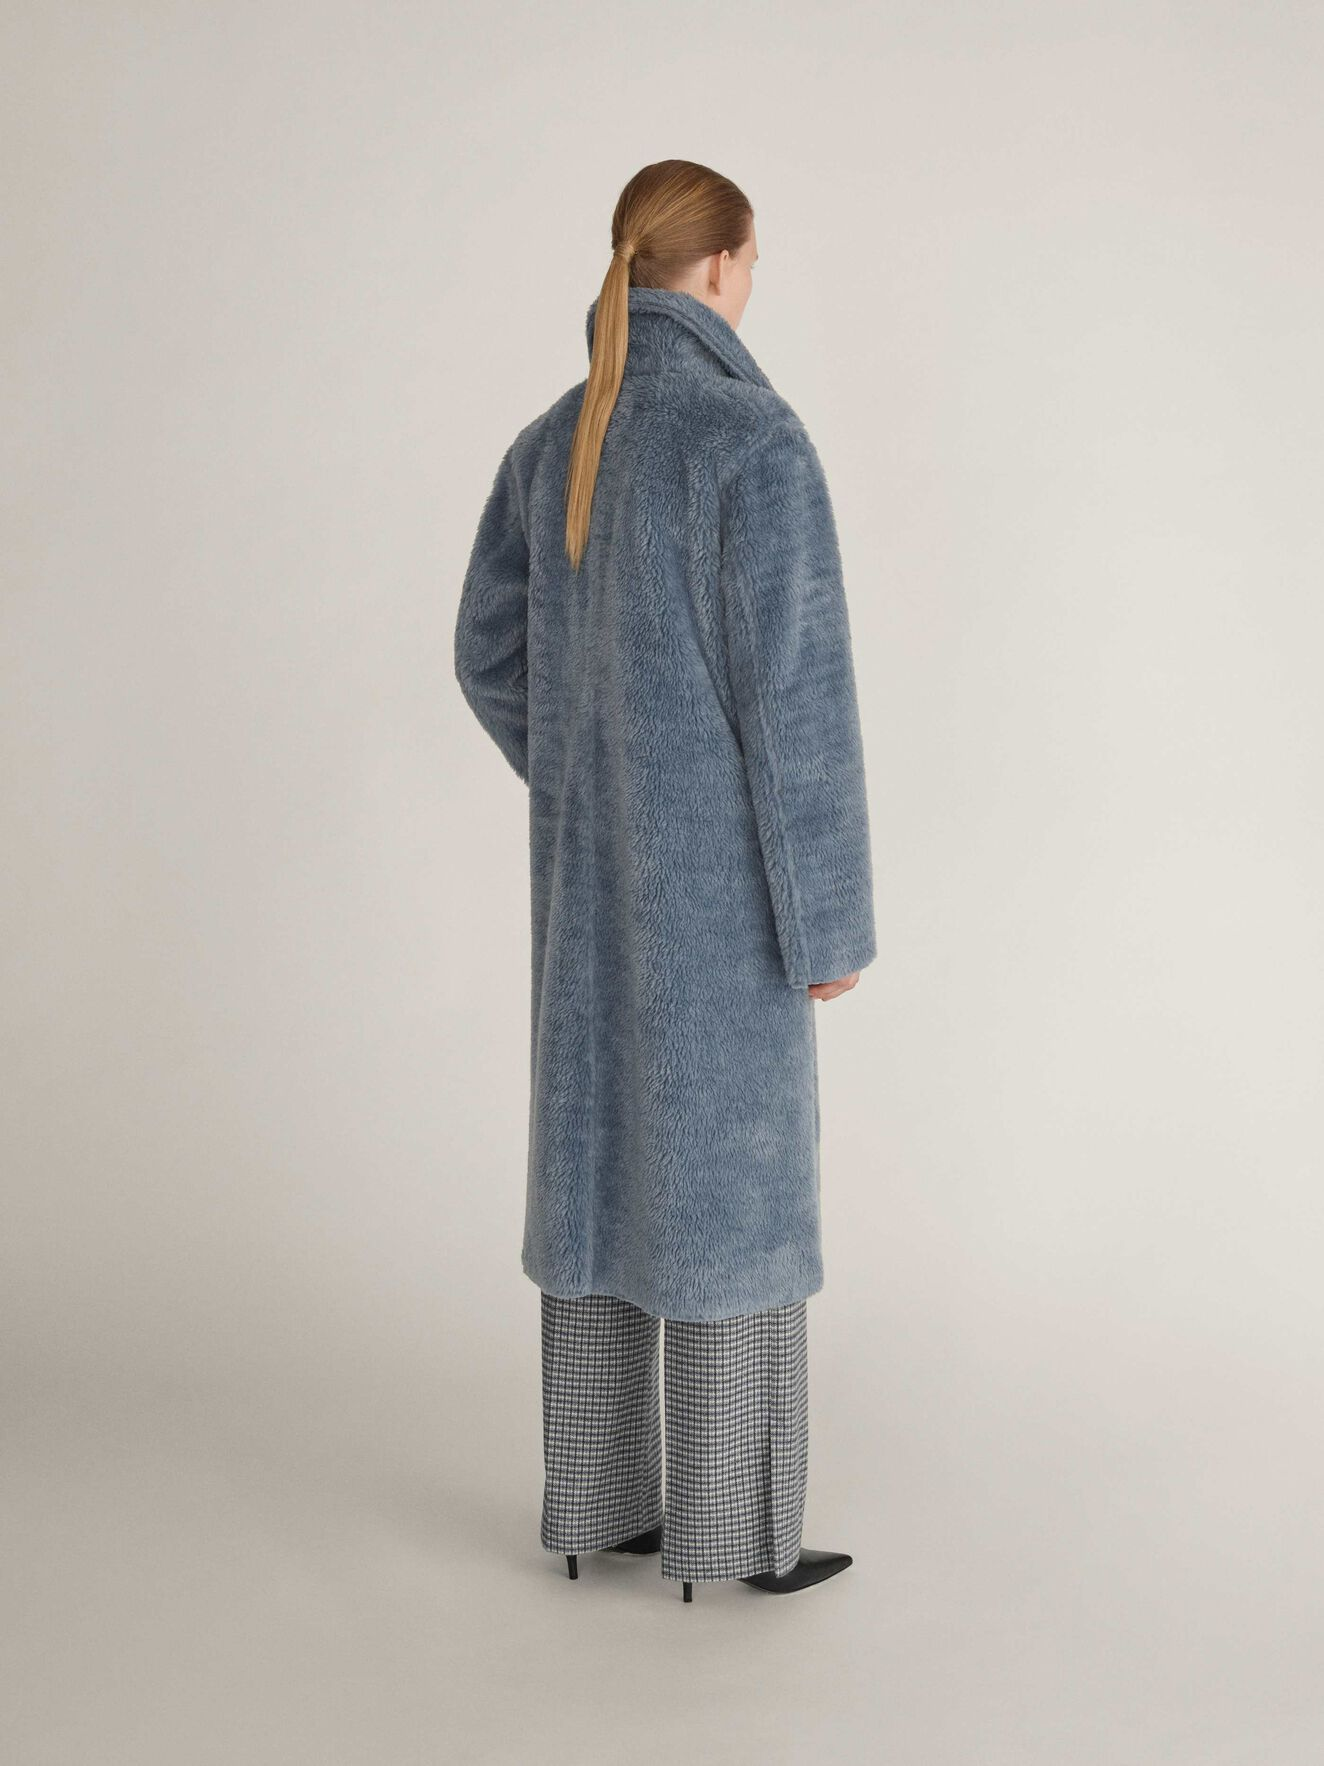 Zinnia Coat in Blue Dawn from Tiger of Sweden